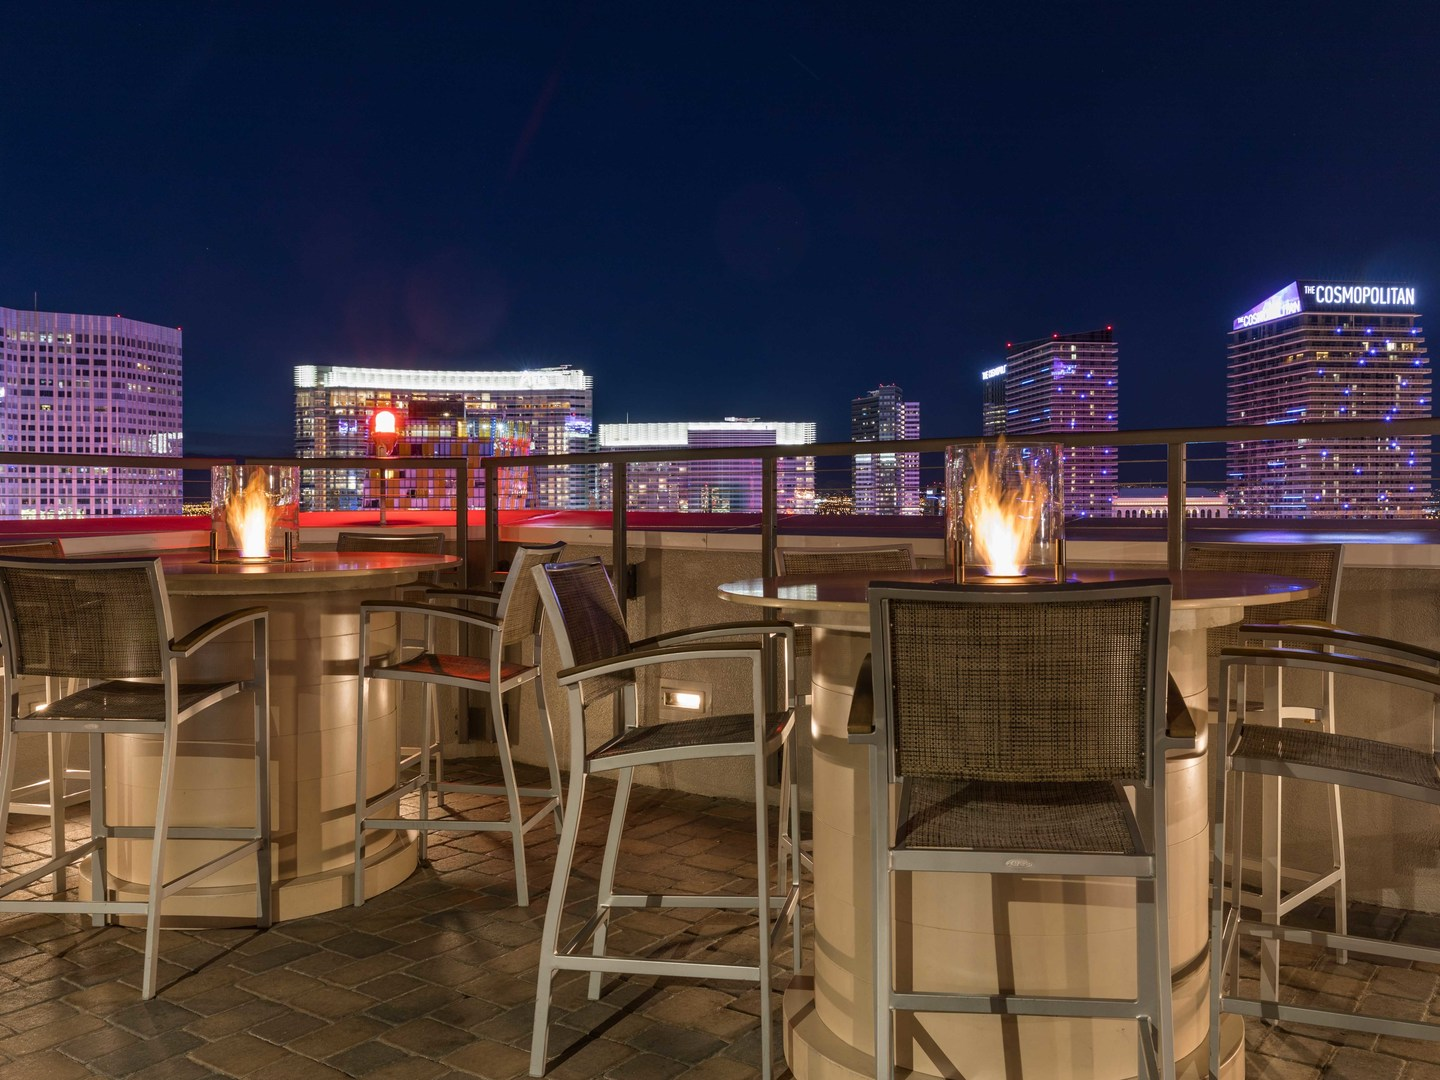 Marriott's Grand Chateau<span class='trademark'>®</span> SkyBar 38/Roof Top Pool/Lounge Area. Marriott's Grand Chateau<span class='trademark'>®</span> is located in Las Vegas, Nevada United States.